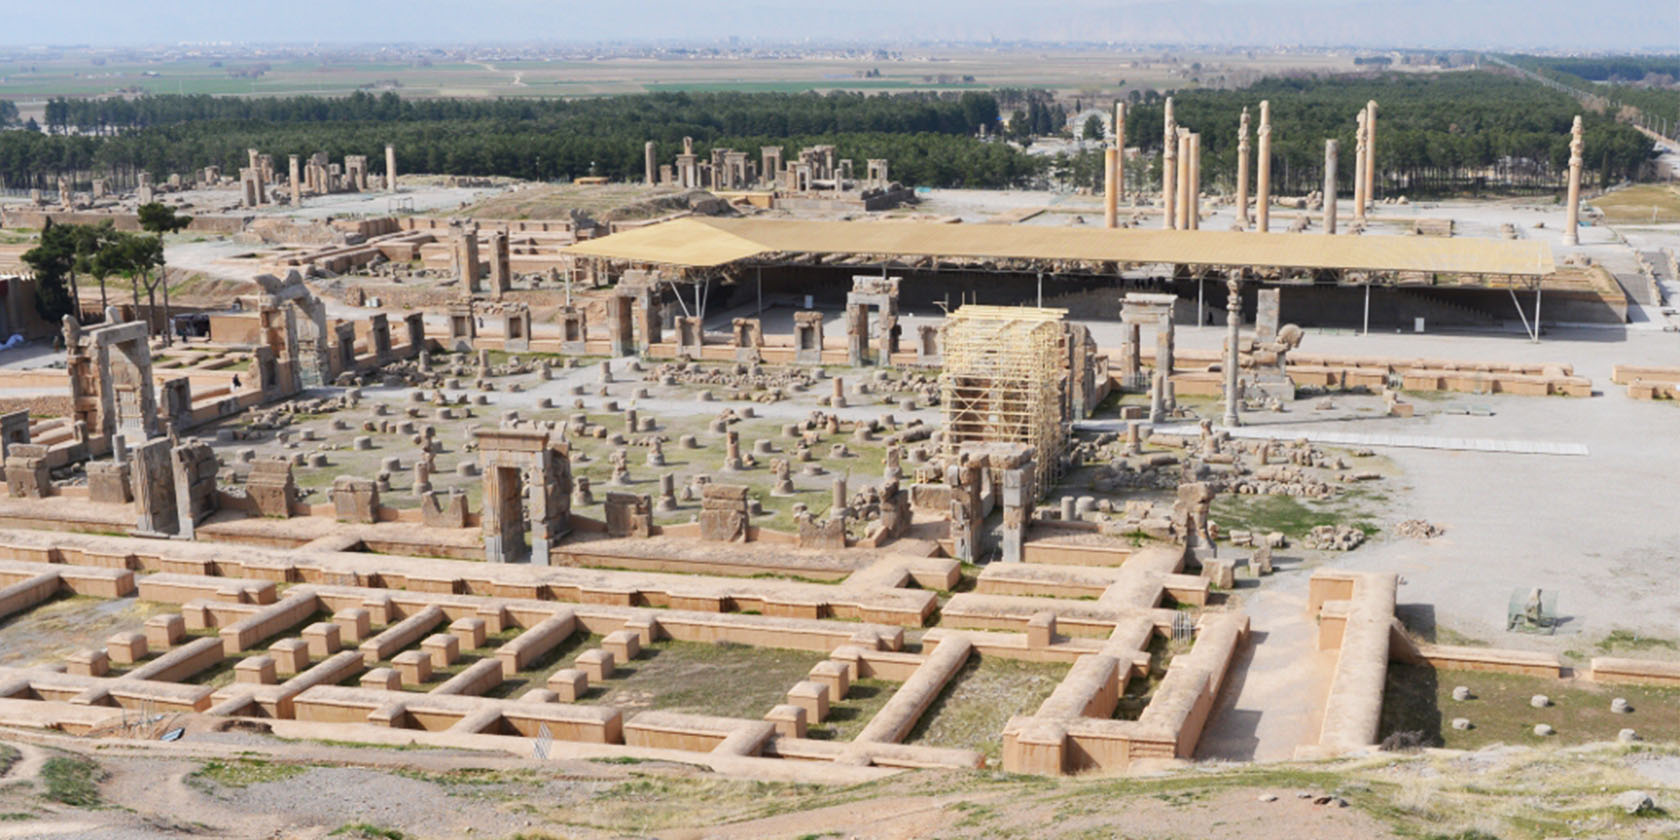 The ruins of the ancient Persian Capital of Persepolis, a massive and expansive structure of freestanding columns. With regards to architecture, the ancient Persians where masters of construction. Their focus was on appearance and ornament. One can assume that this mode of thinking would set the tone for future civilizations that would develop in the area, mainly in the Arab world.